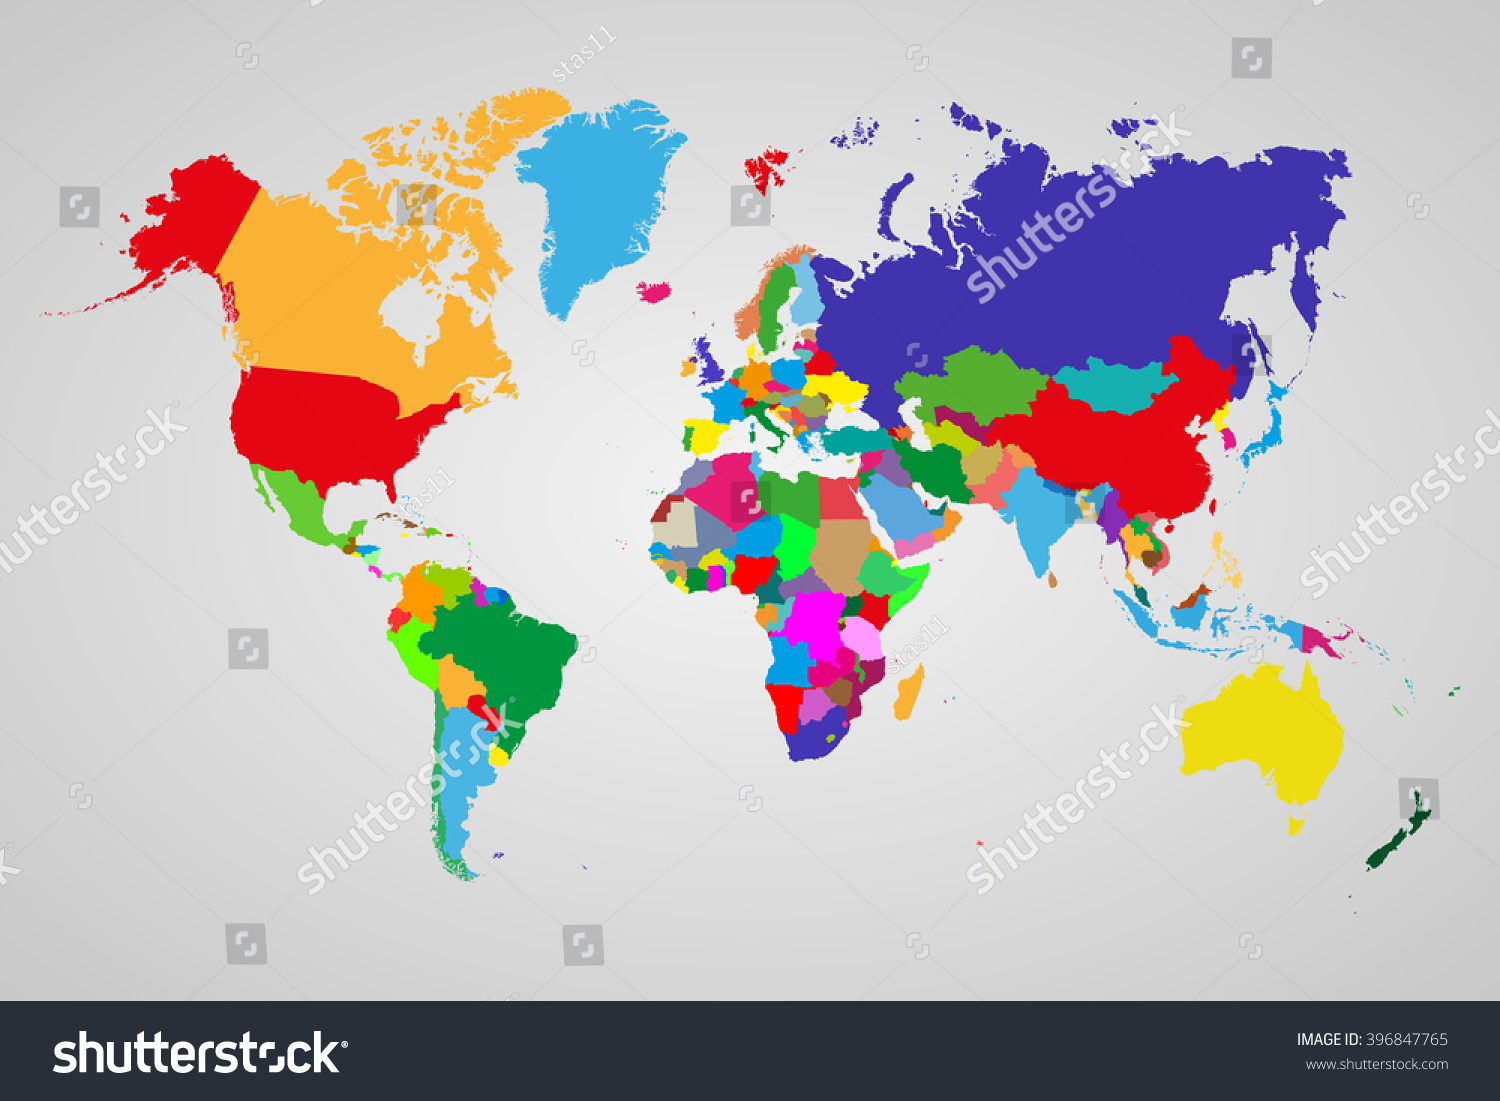 Colored Political World Map Sovereign Countries Stock Vector - World map political